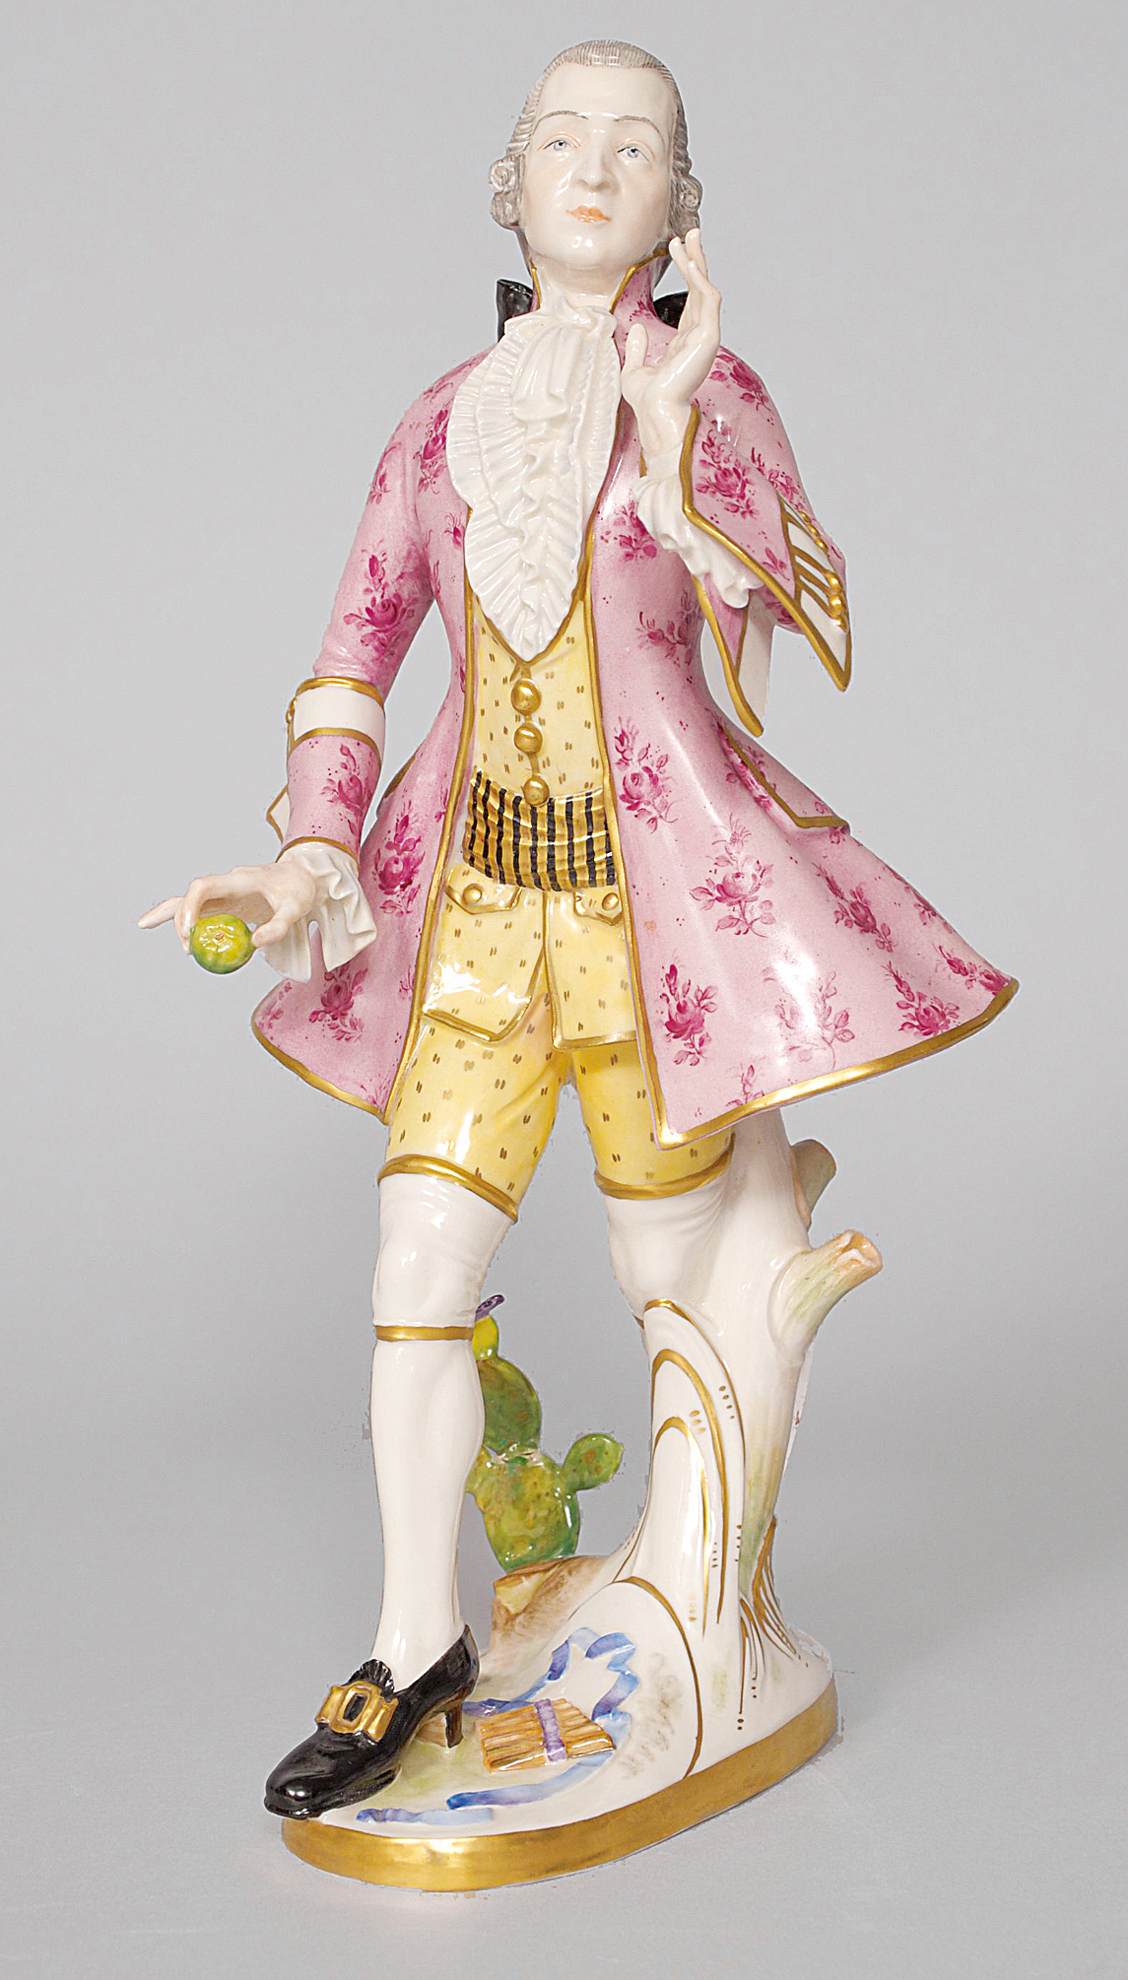 A large figure of Mozart